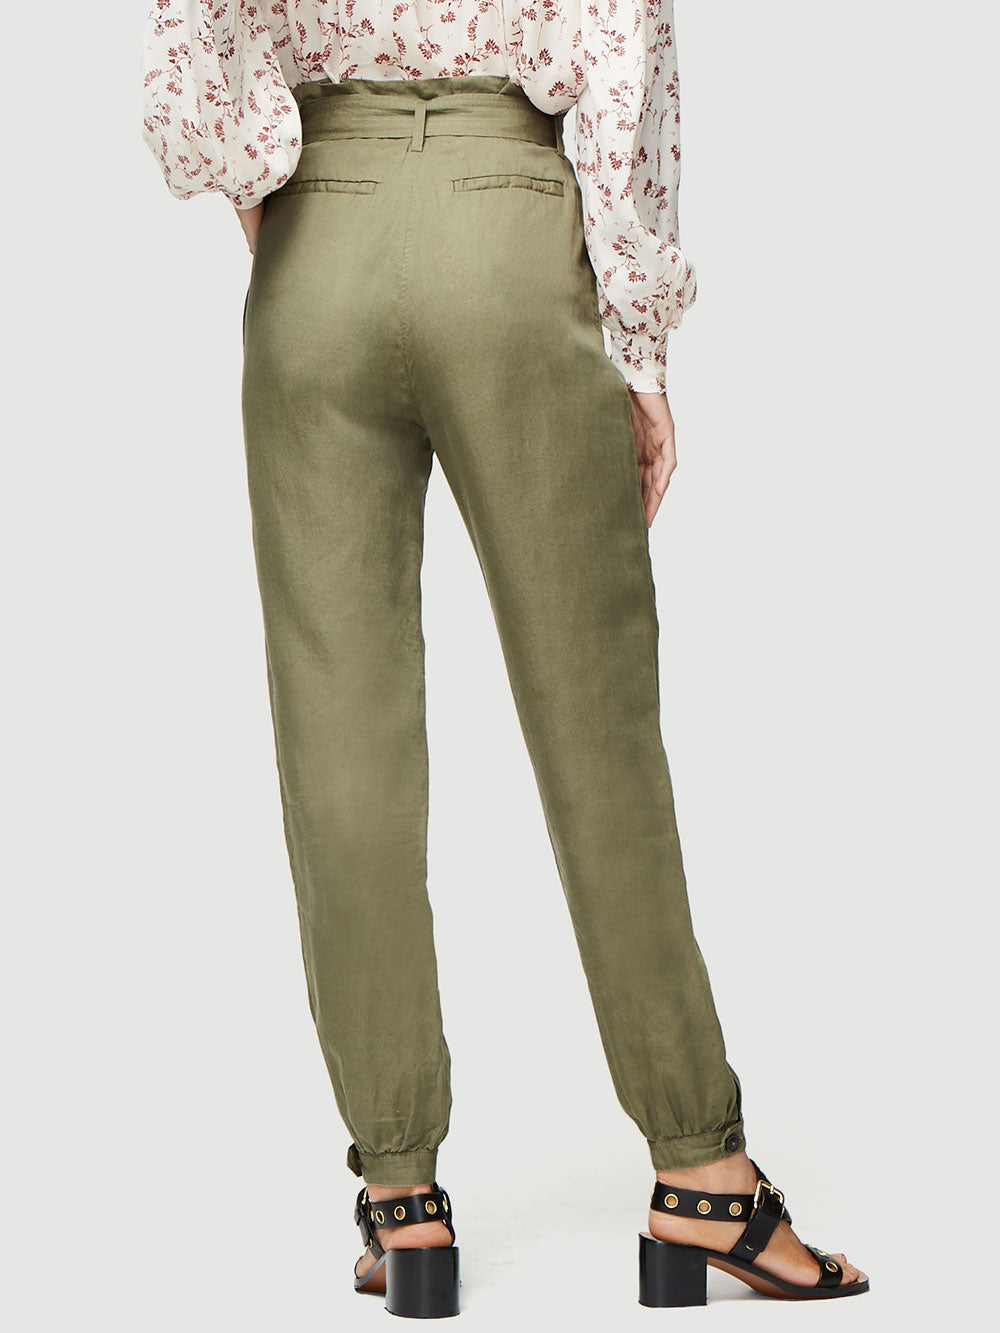 ef95e10815 Utilitarian Inspired, This Paperbag Trouser Channels A 70s Marrakesh Vibe.  Cut From A Breathable Linen Blend With A Self-Tie Belt, Style Yours With A  Ribbed ...